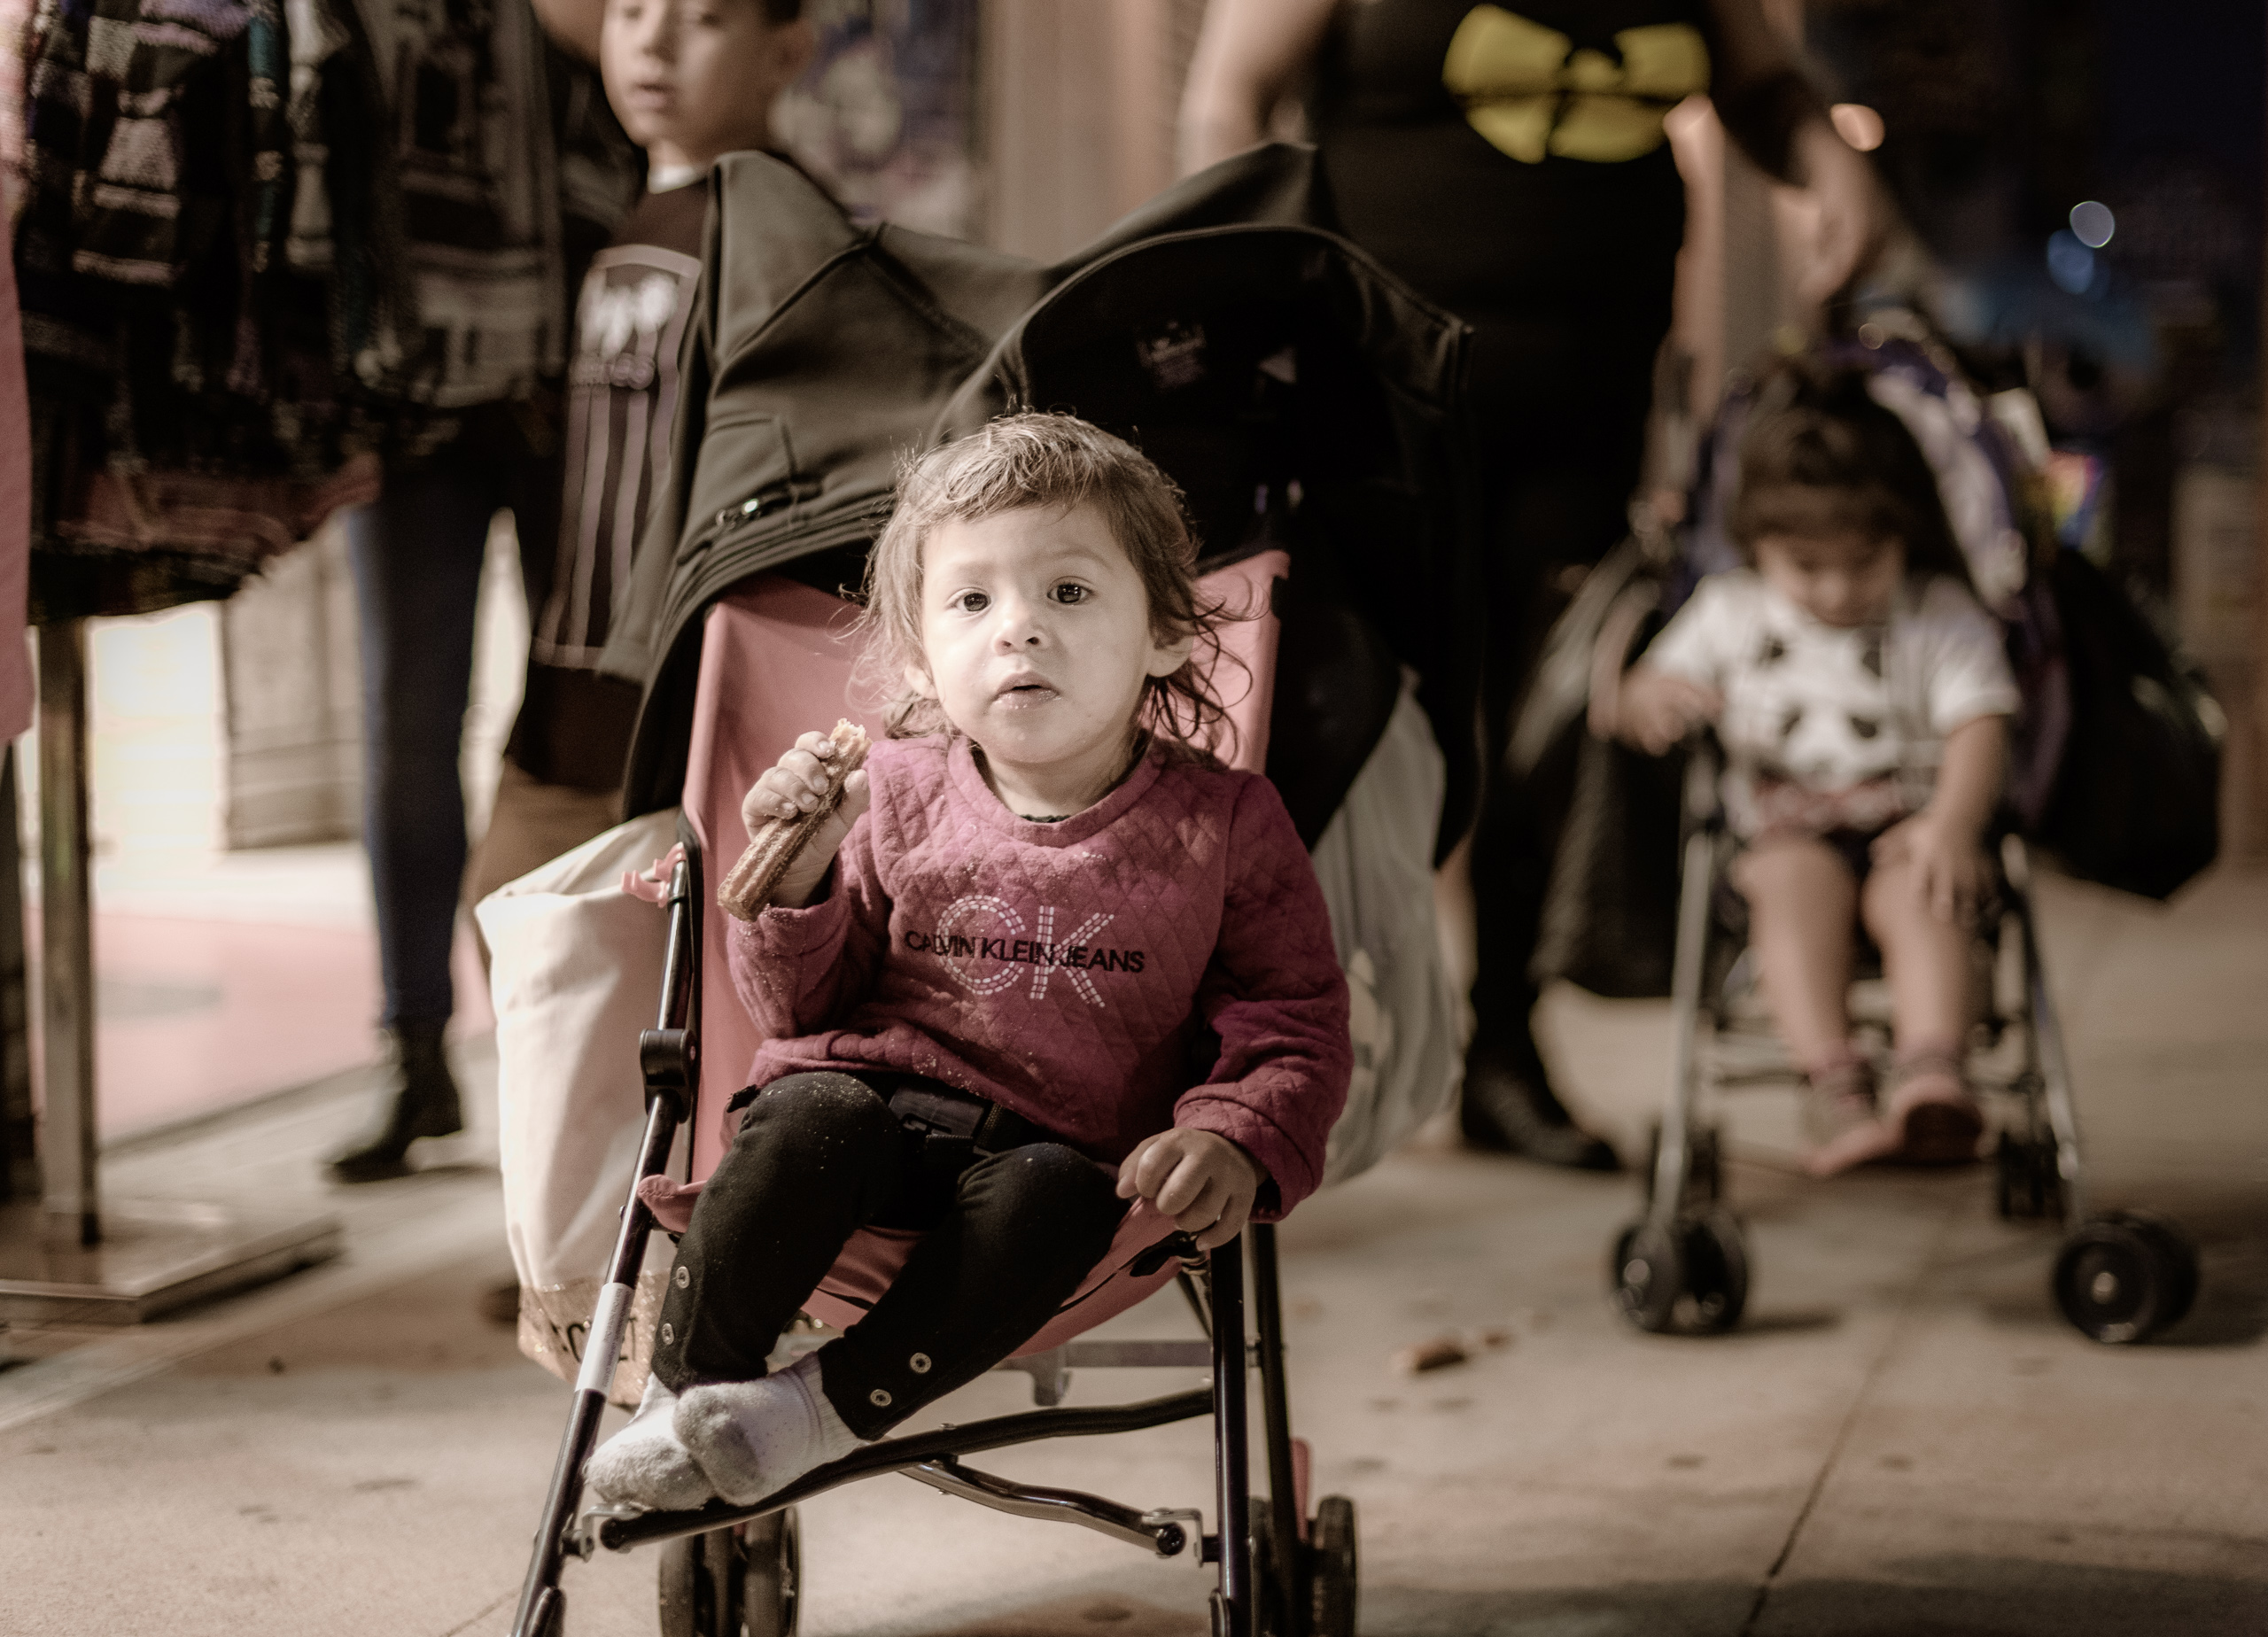 a young child in a stroller with his family behind him